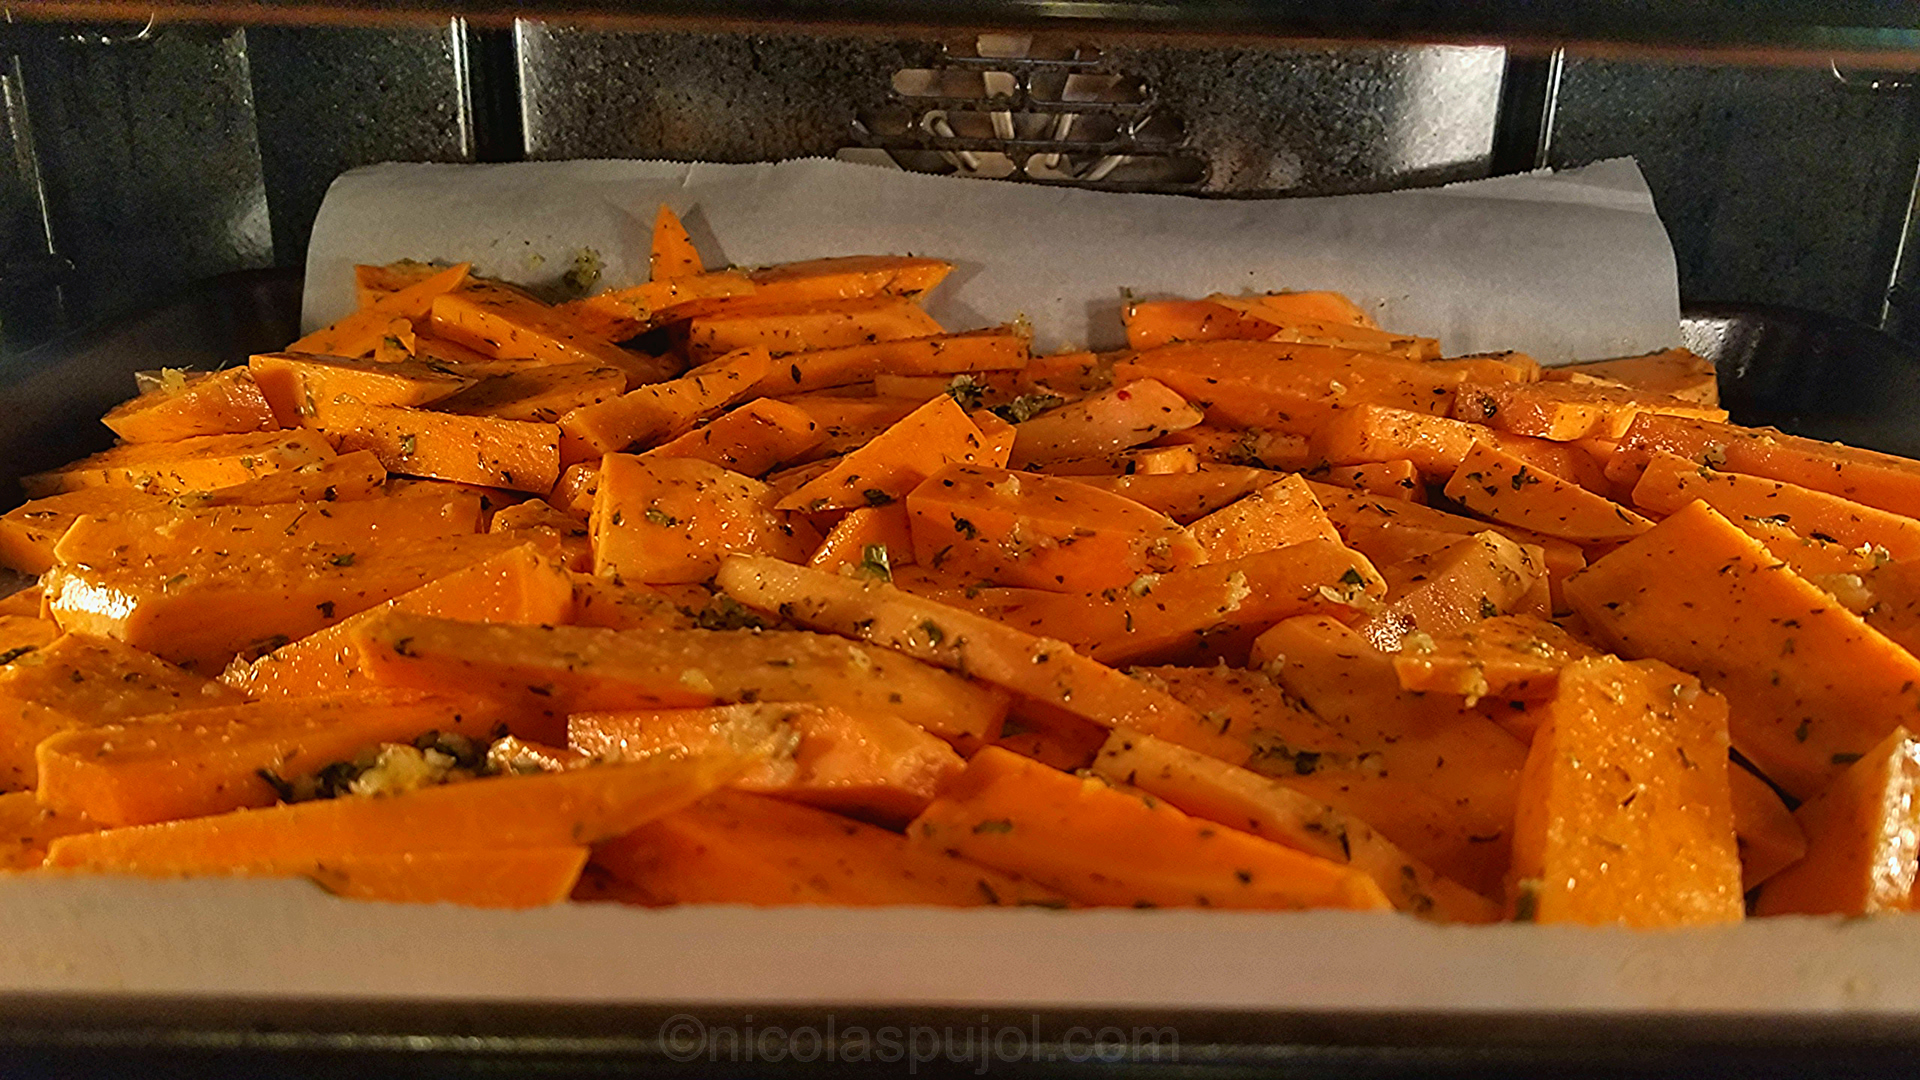 Sweet potato fries in the oven